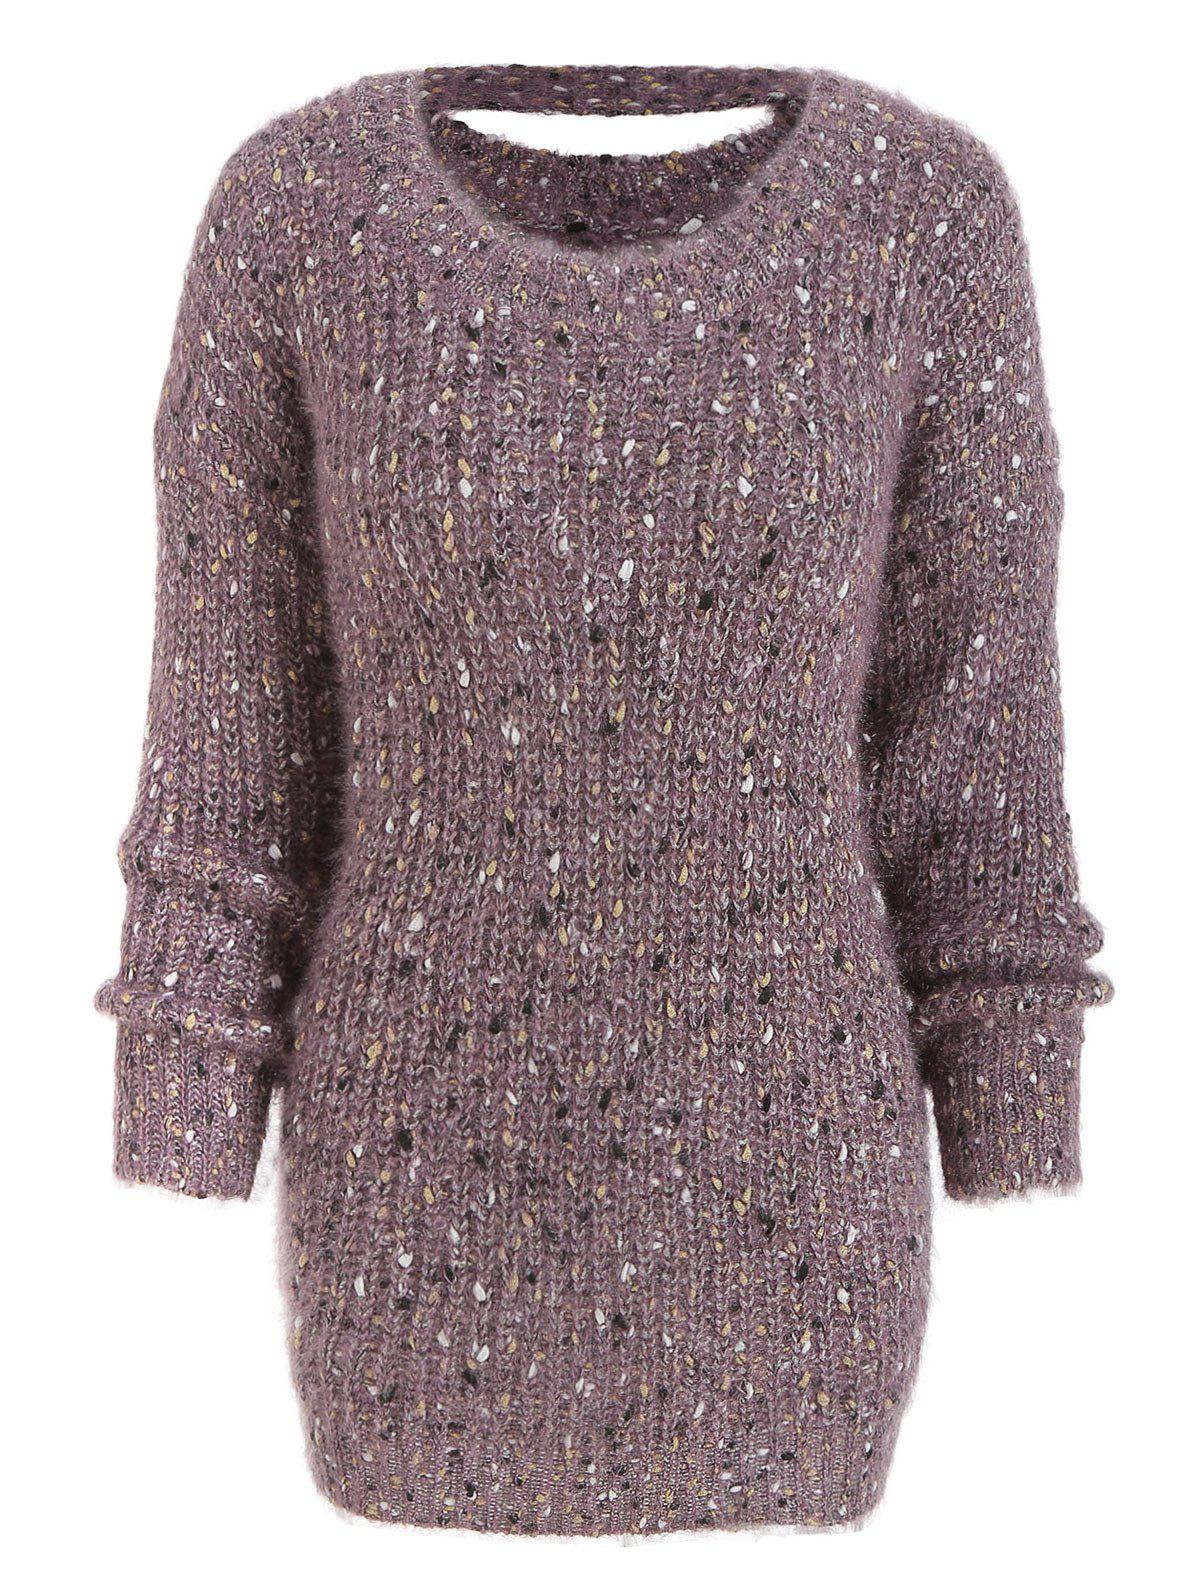 Store Long Sleeve Cut Out Chunky Sweater